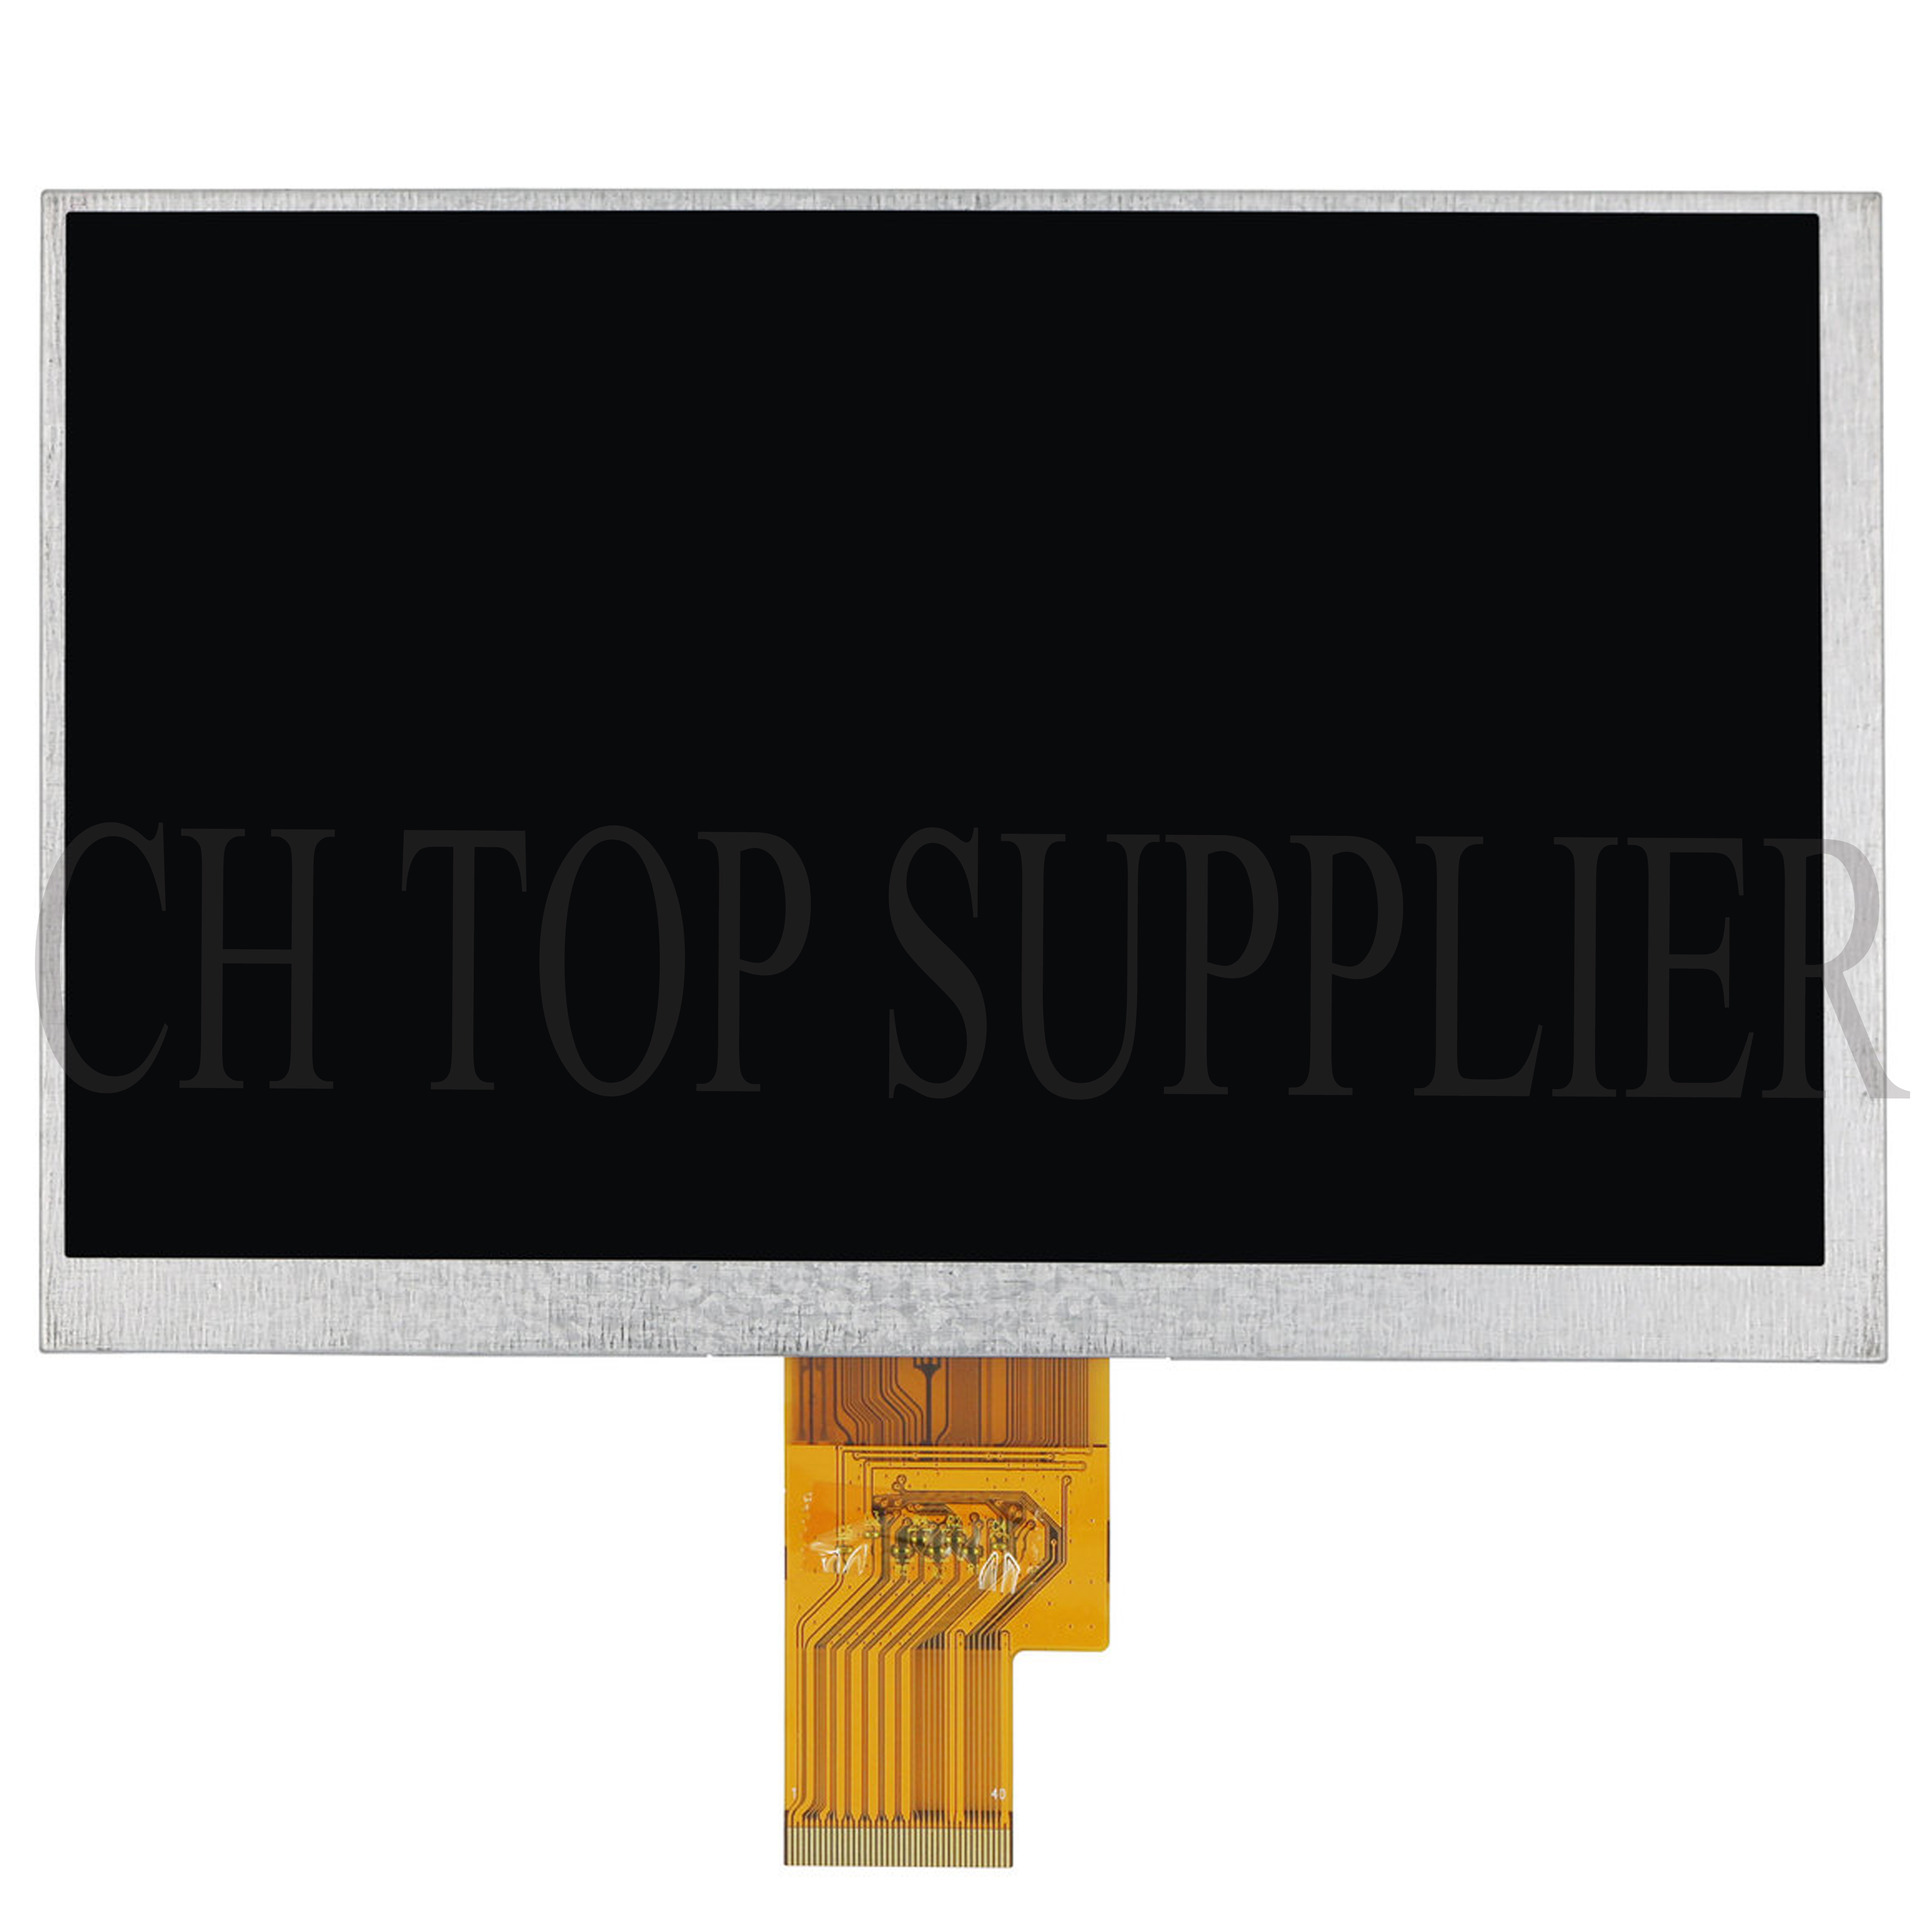 Original 7'' inch LCD Display KR070LE7T for tablet pc display lcd screen 1024*600 40pin free shipping 165*100mm  original and new 10 1inch lcd screen claa101wh13 le claa101wh for tablet pc free shipping